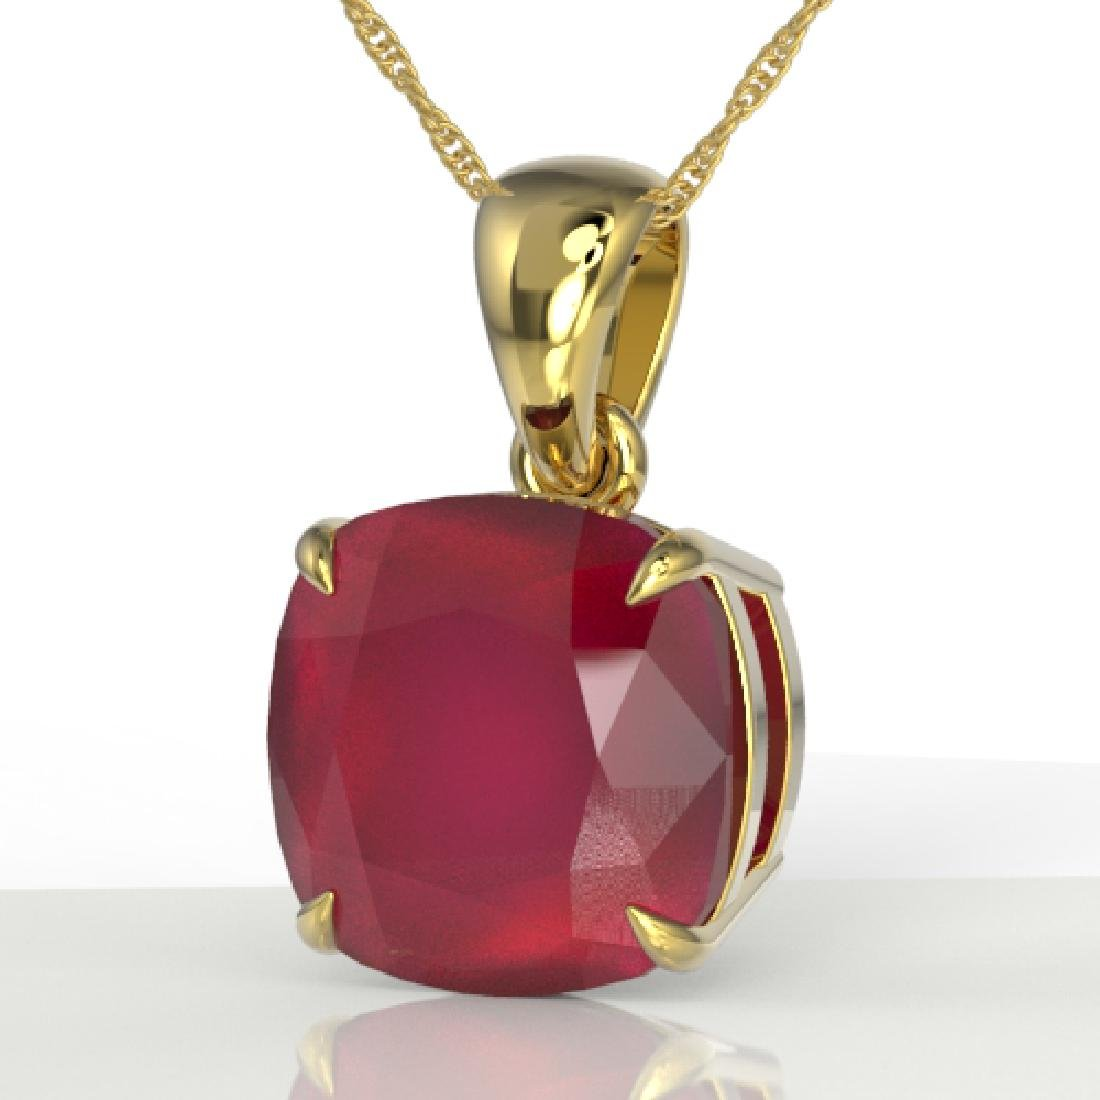 6 Cushion Cut Ruby Designer Inspired Solitaire necklace